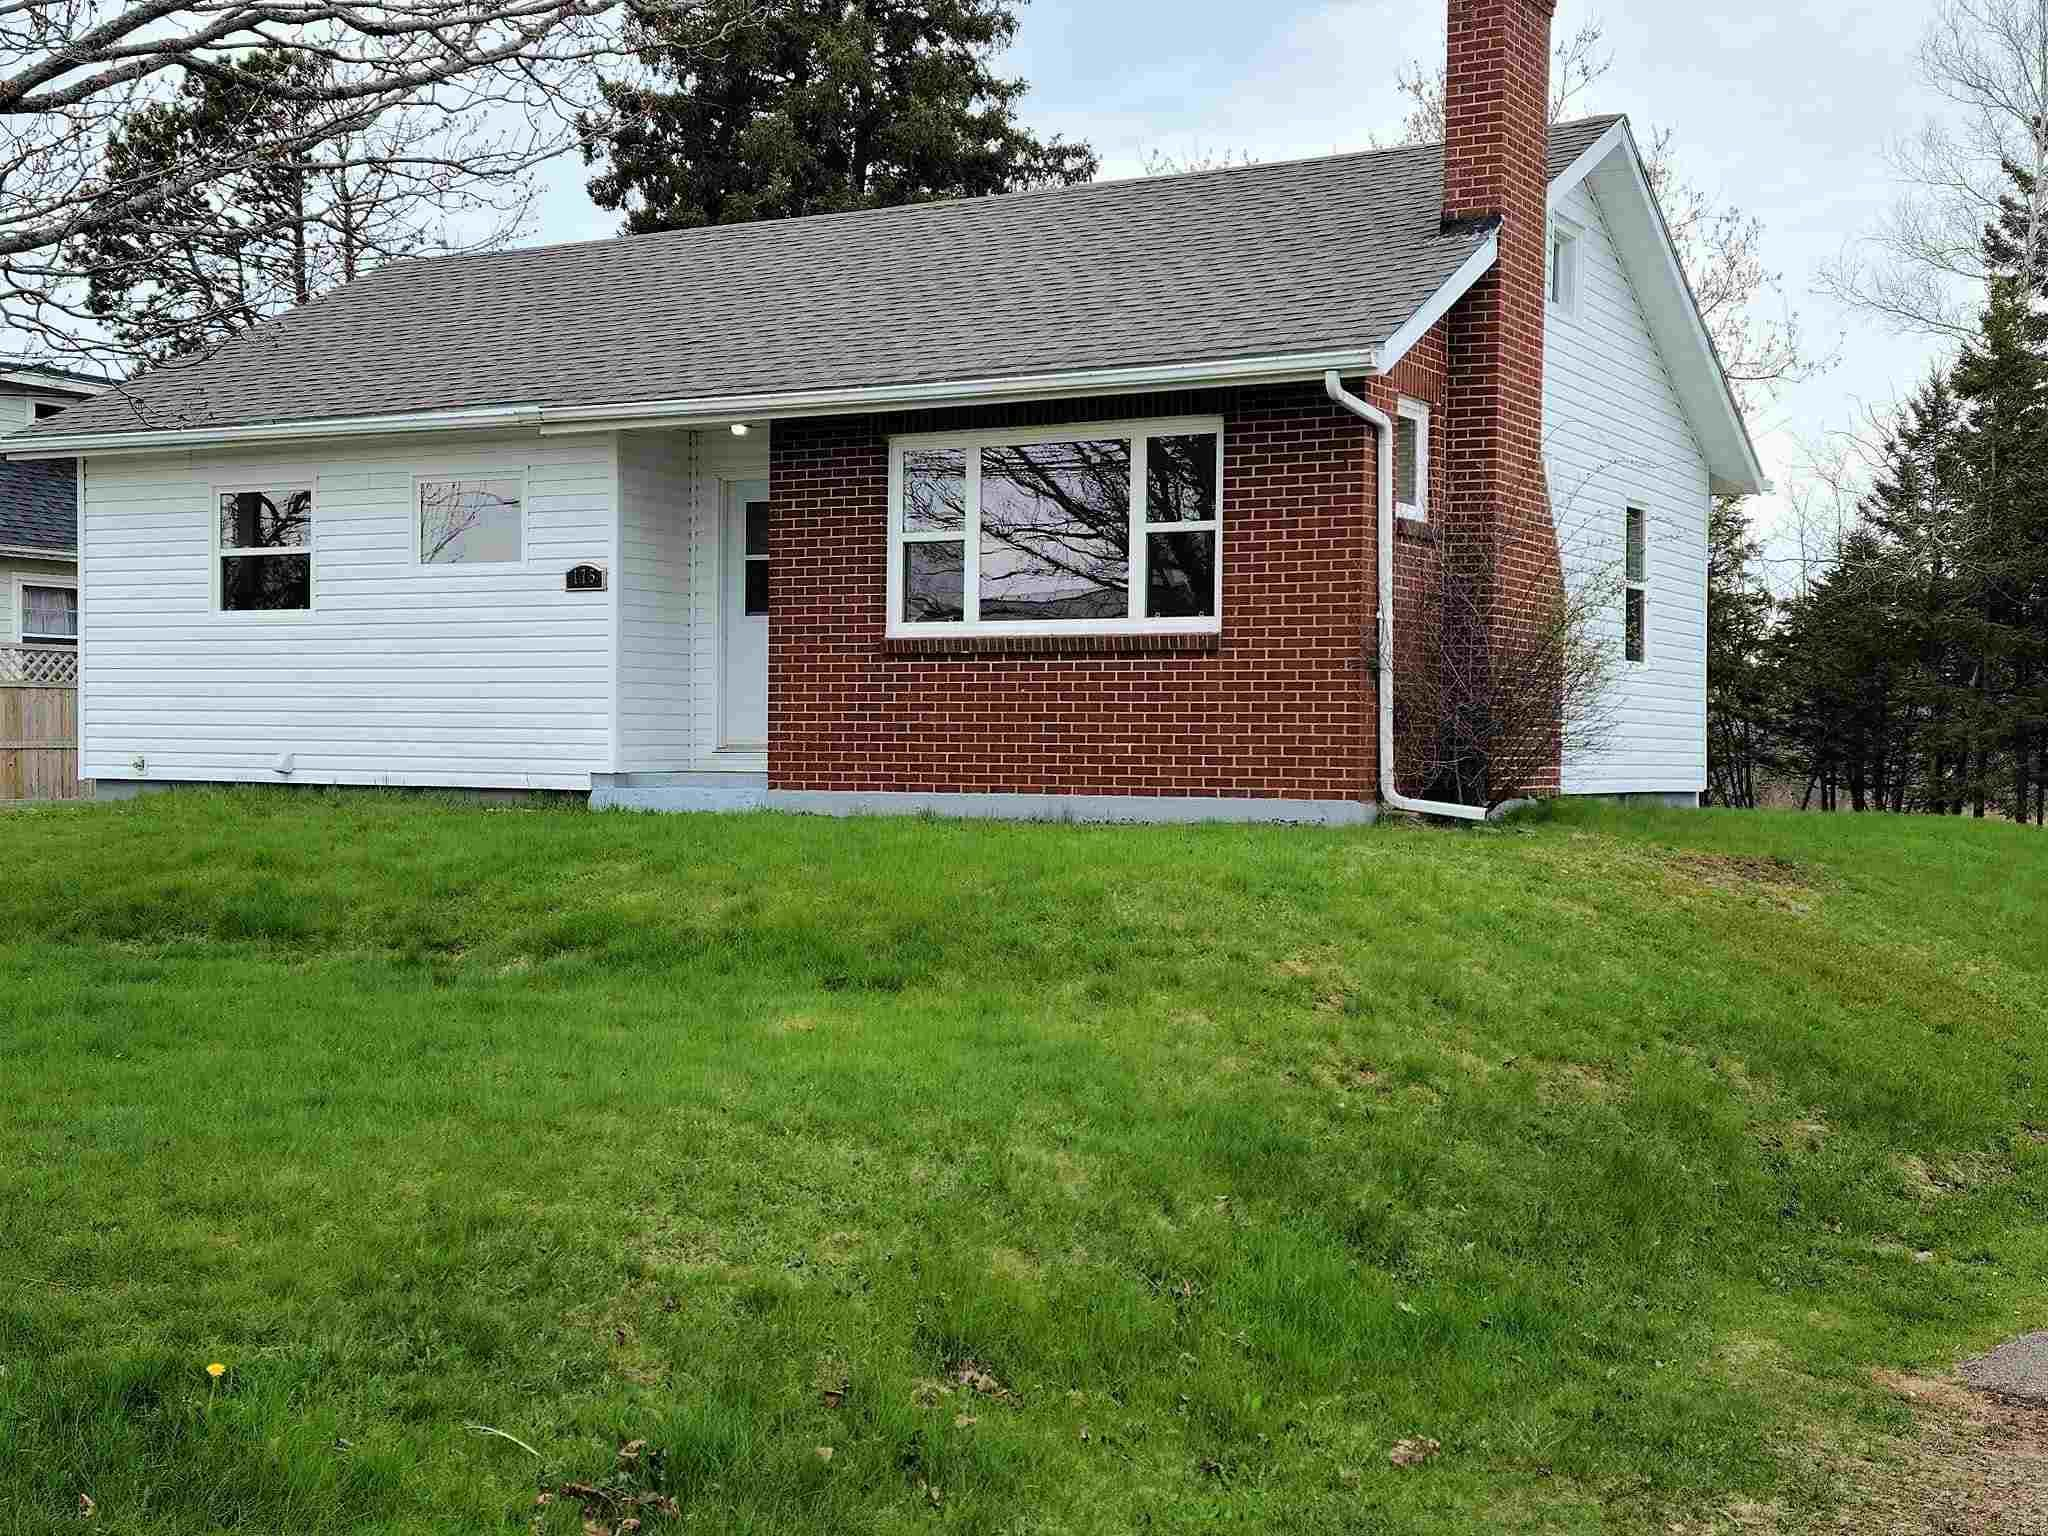 Main Photo: 175 Pictou Road in Bible Hill: 104-Truro/Bible Hill/Brookfield Residential for sale (Northern Region)  : MLS®# 202111058